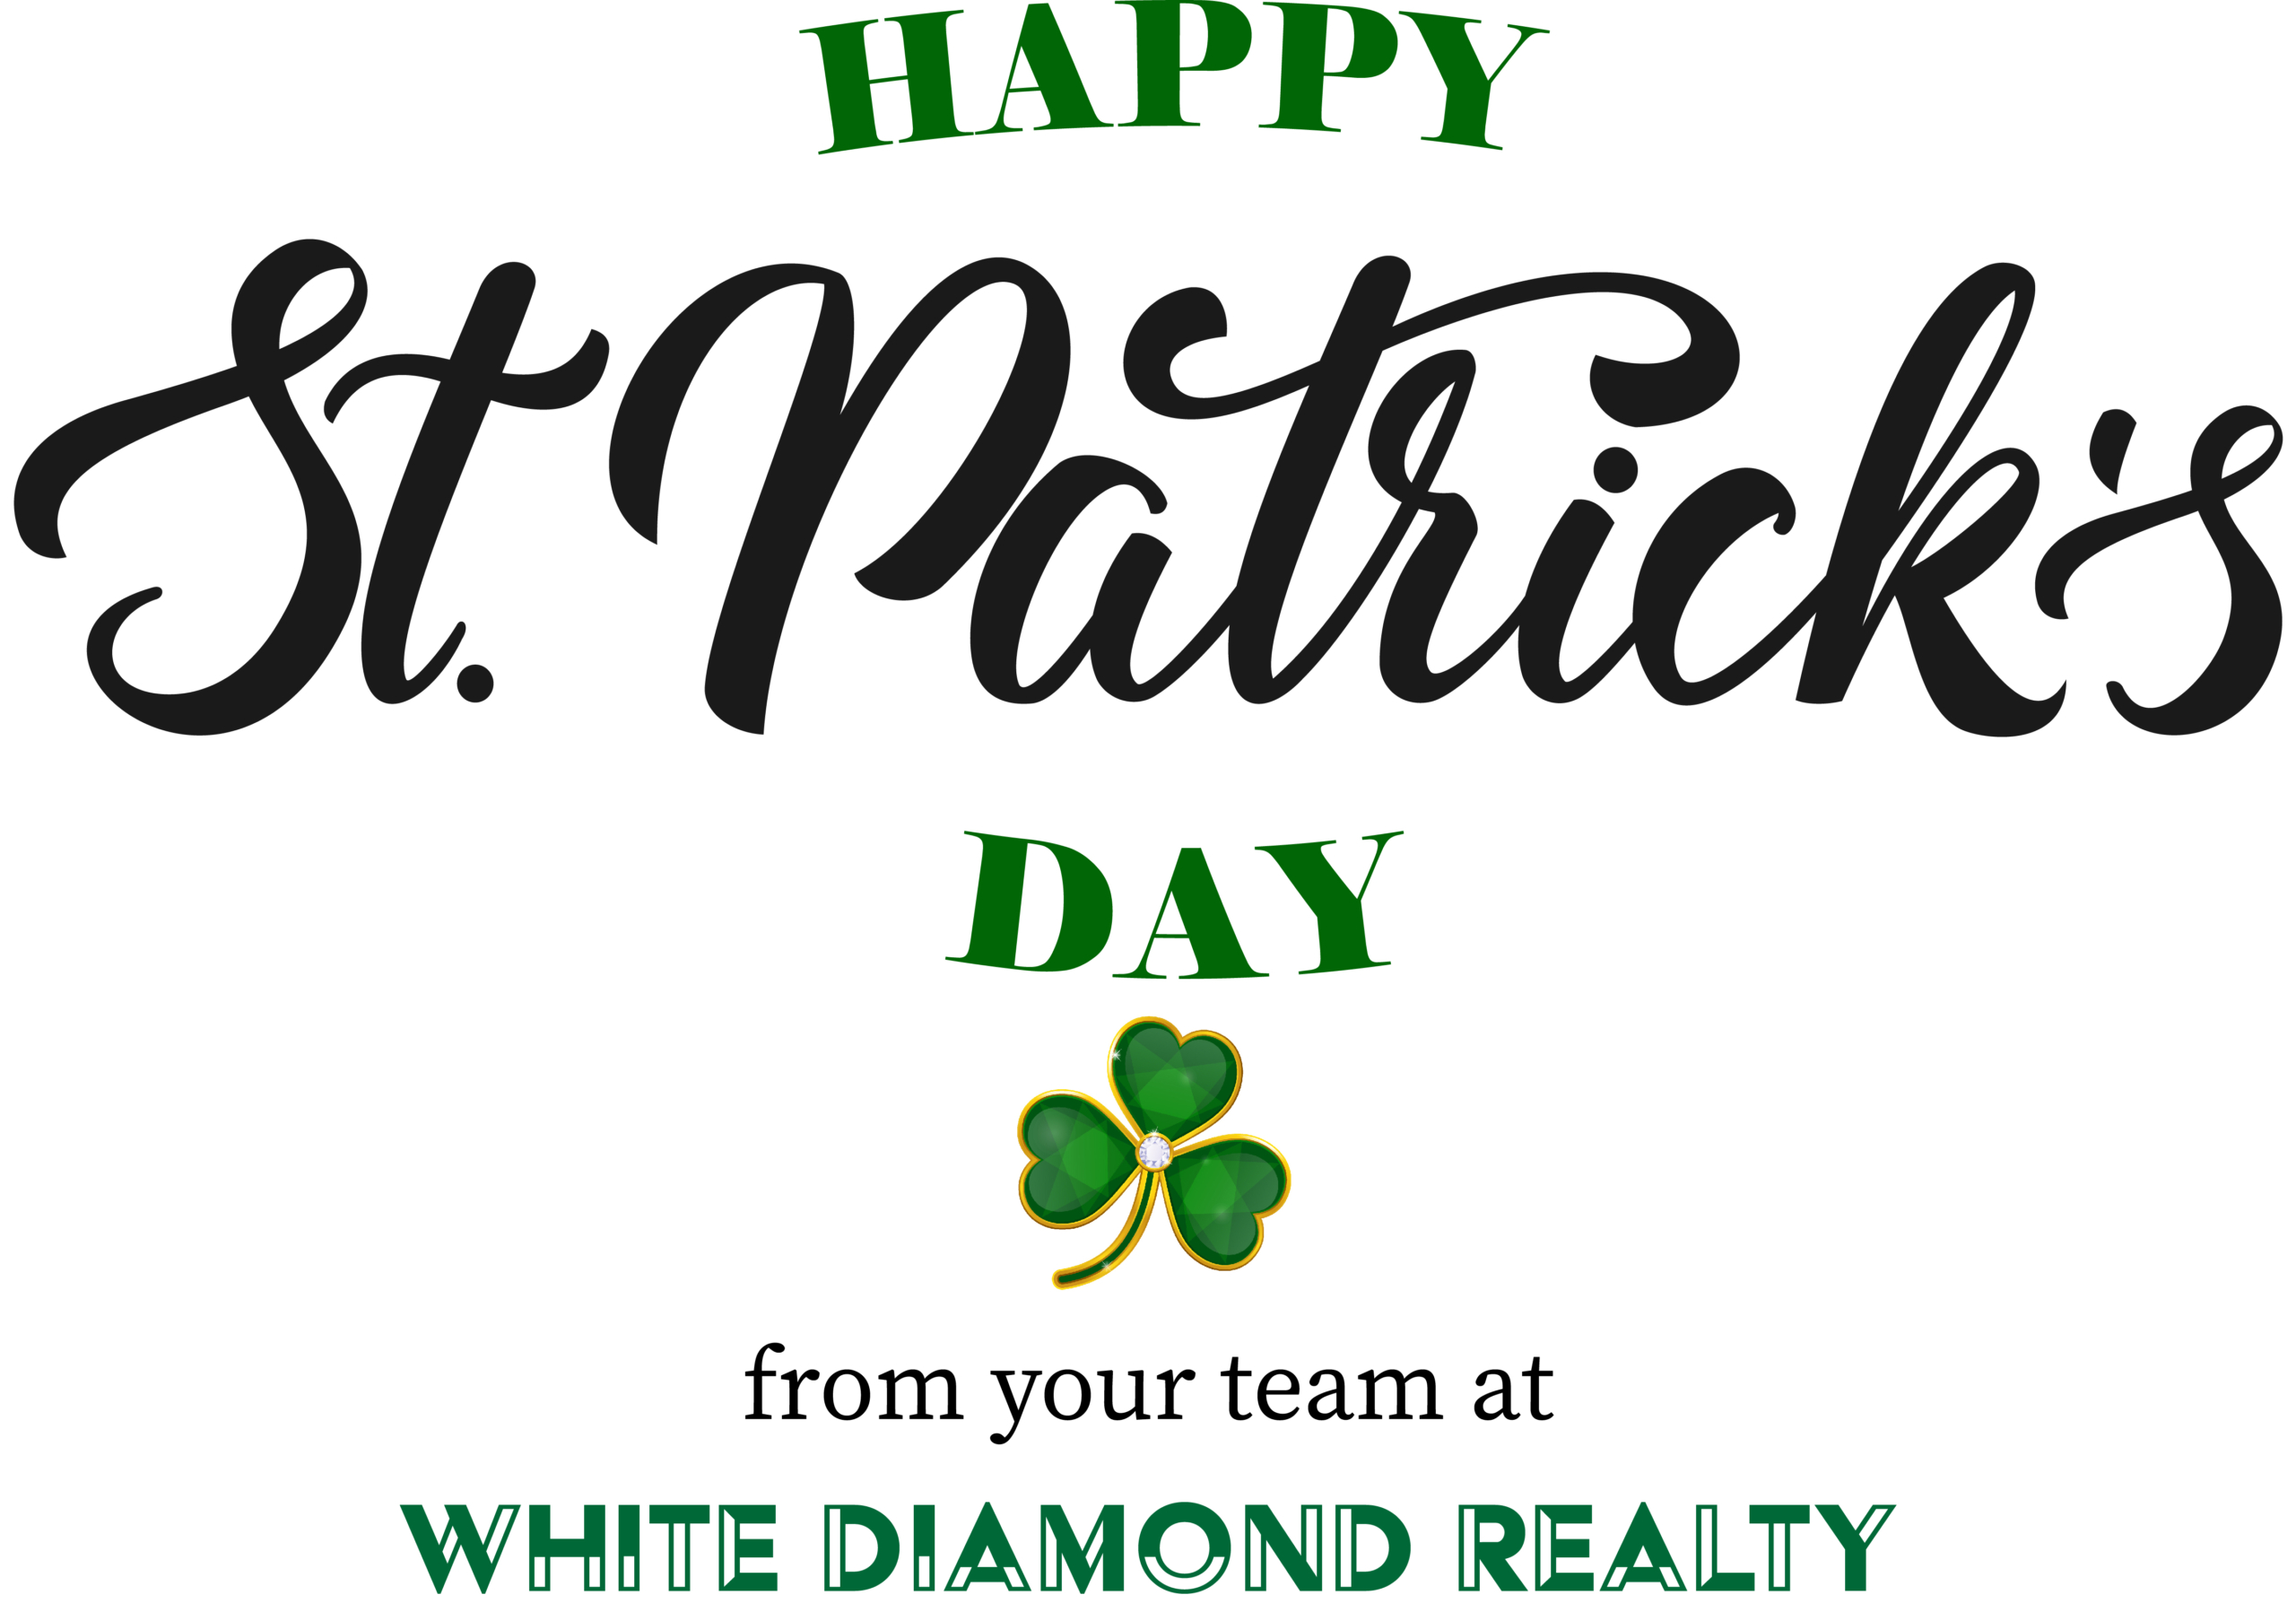 Happy St. Patrick's Day from White Diamond